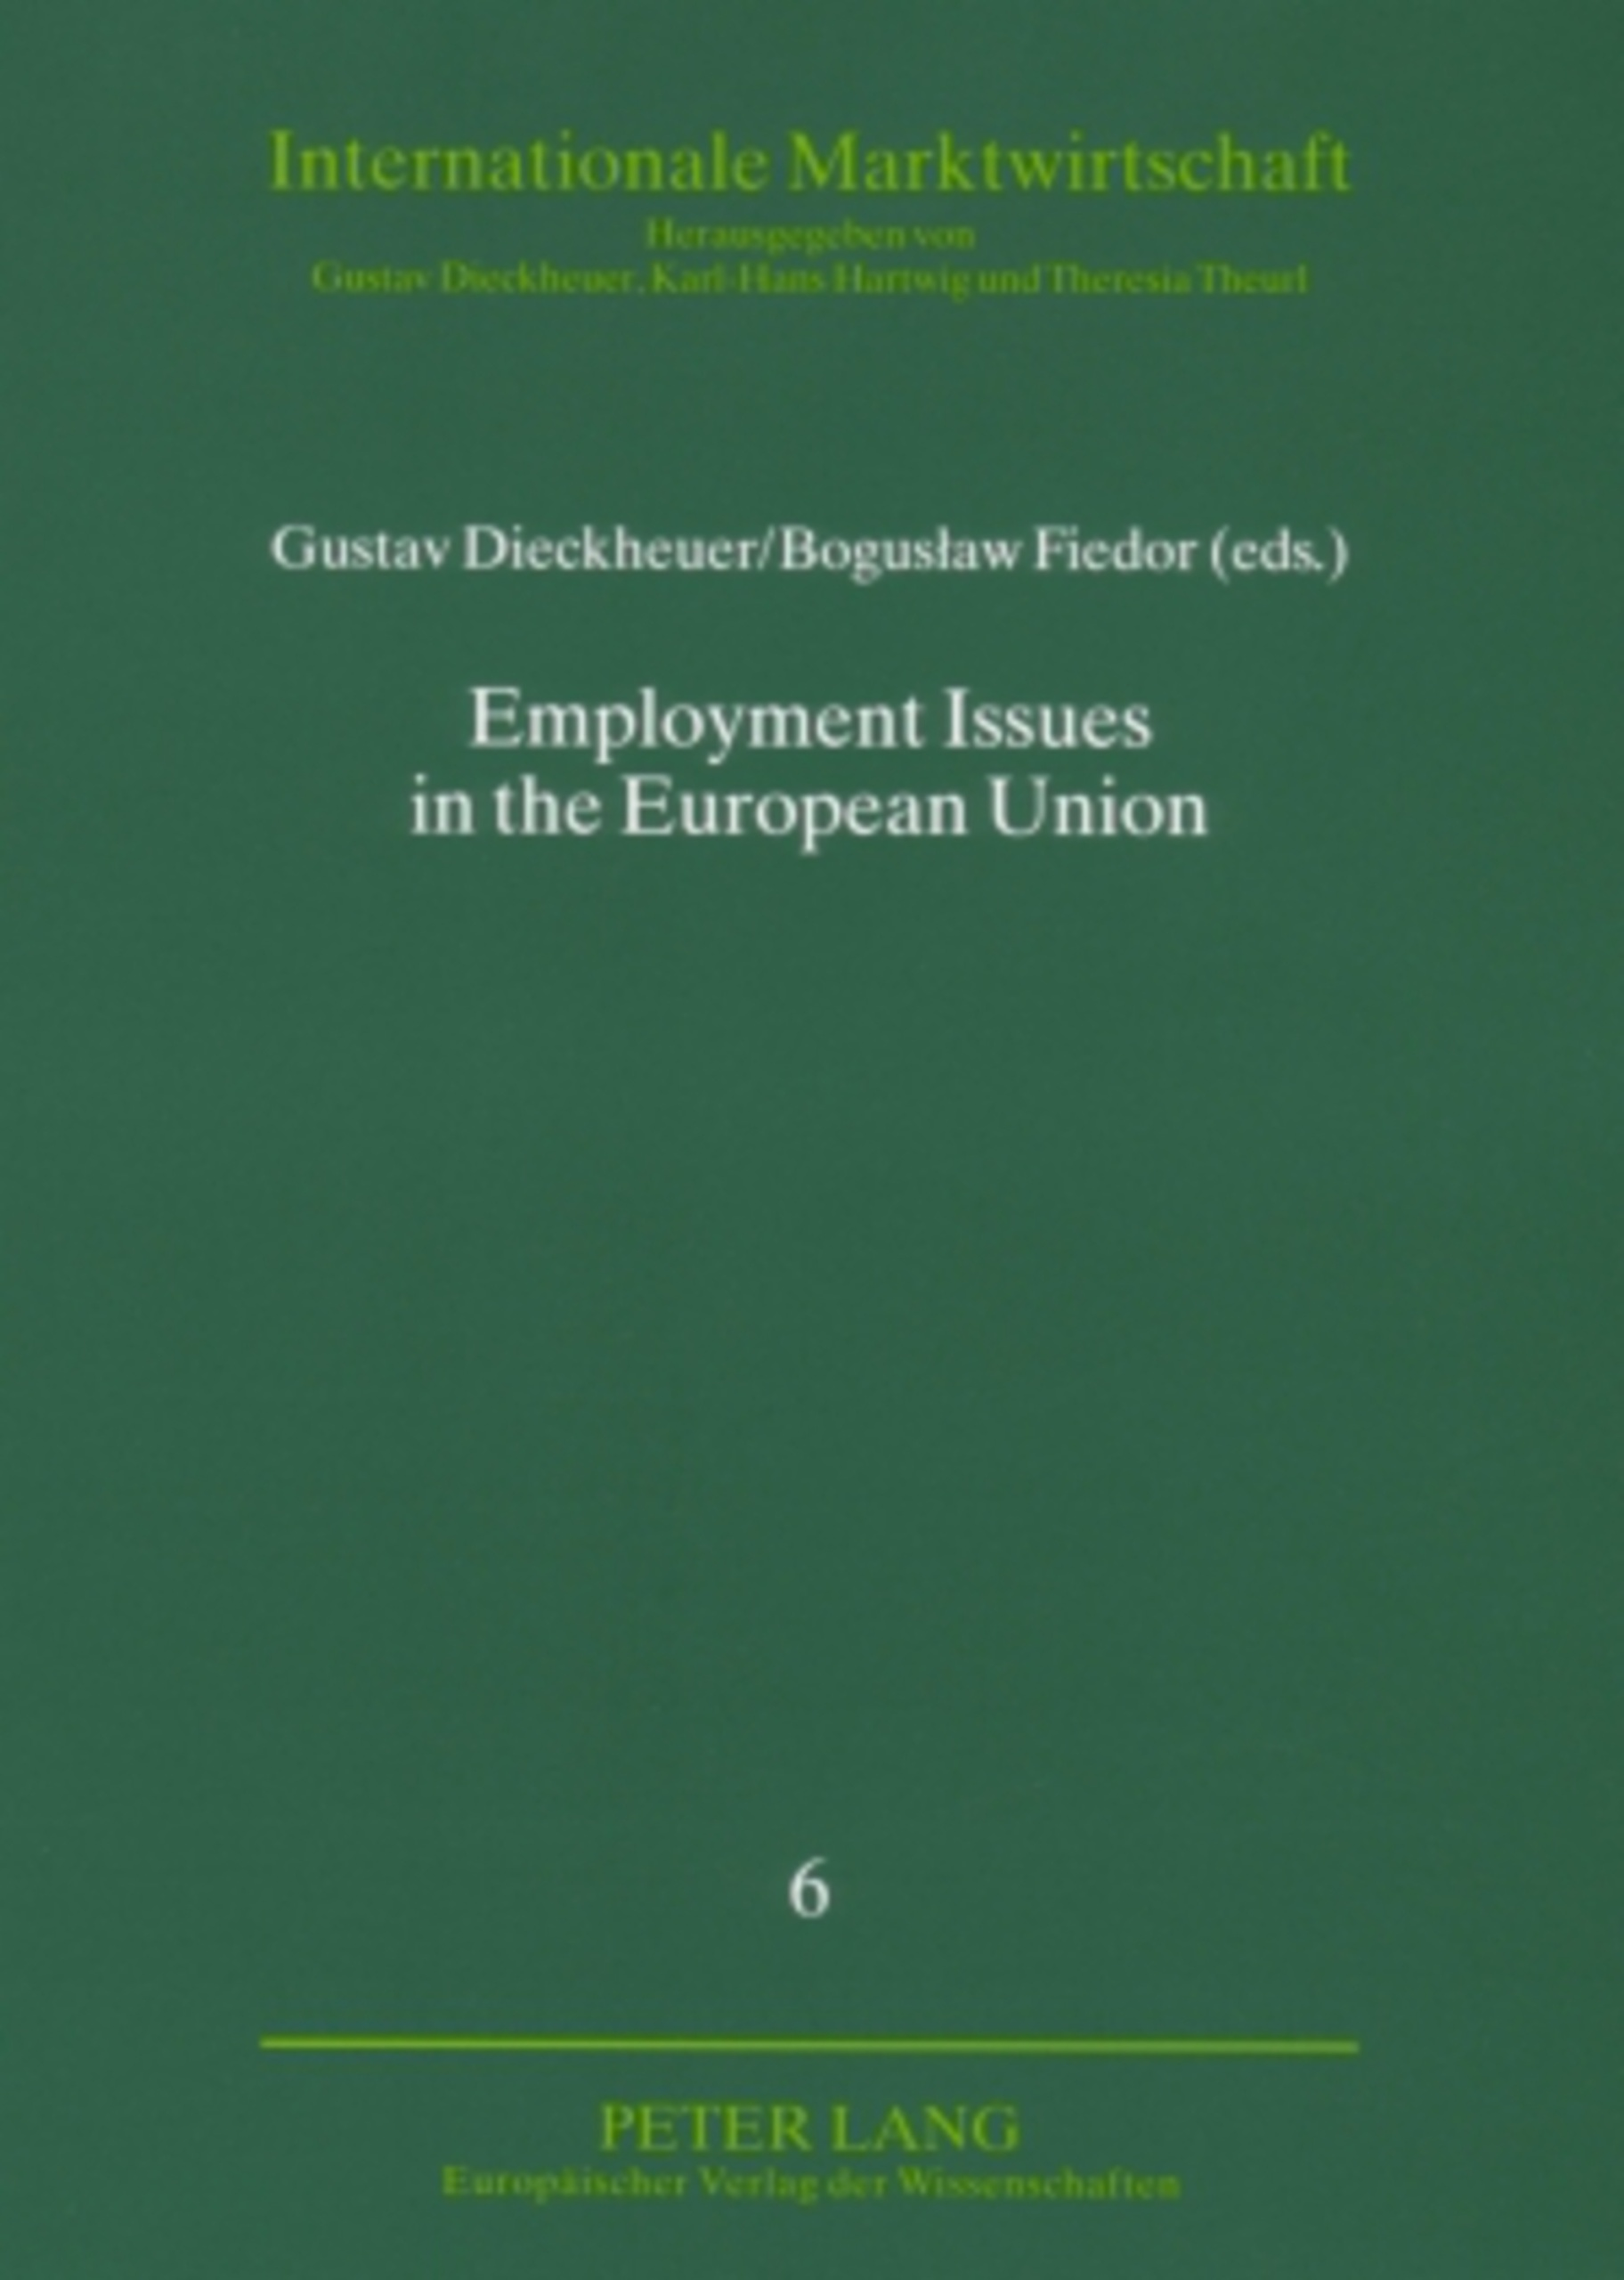 Title: Employment Issues in the European Union